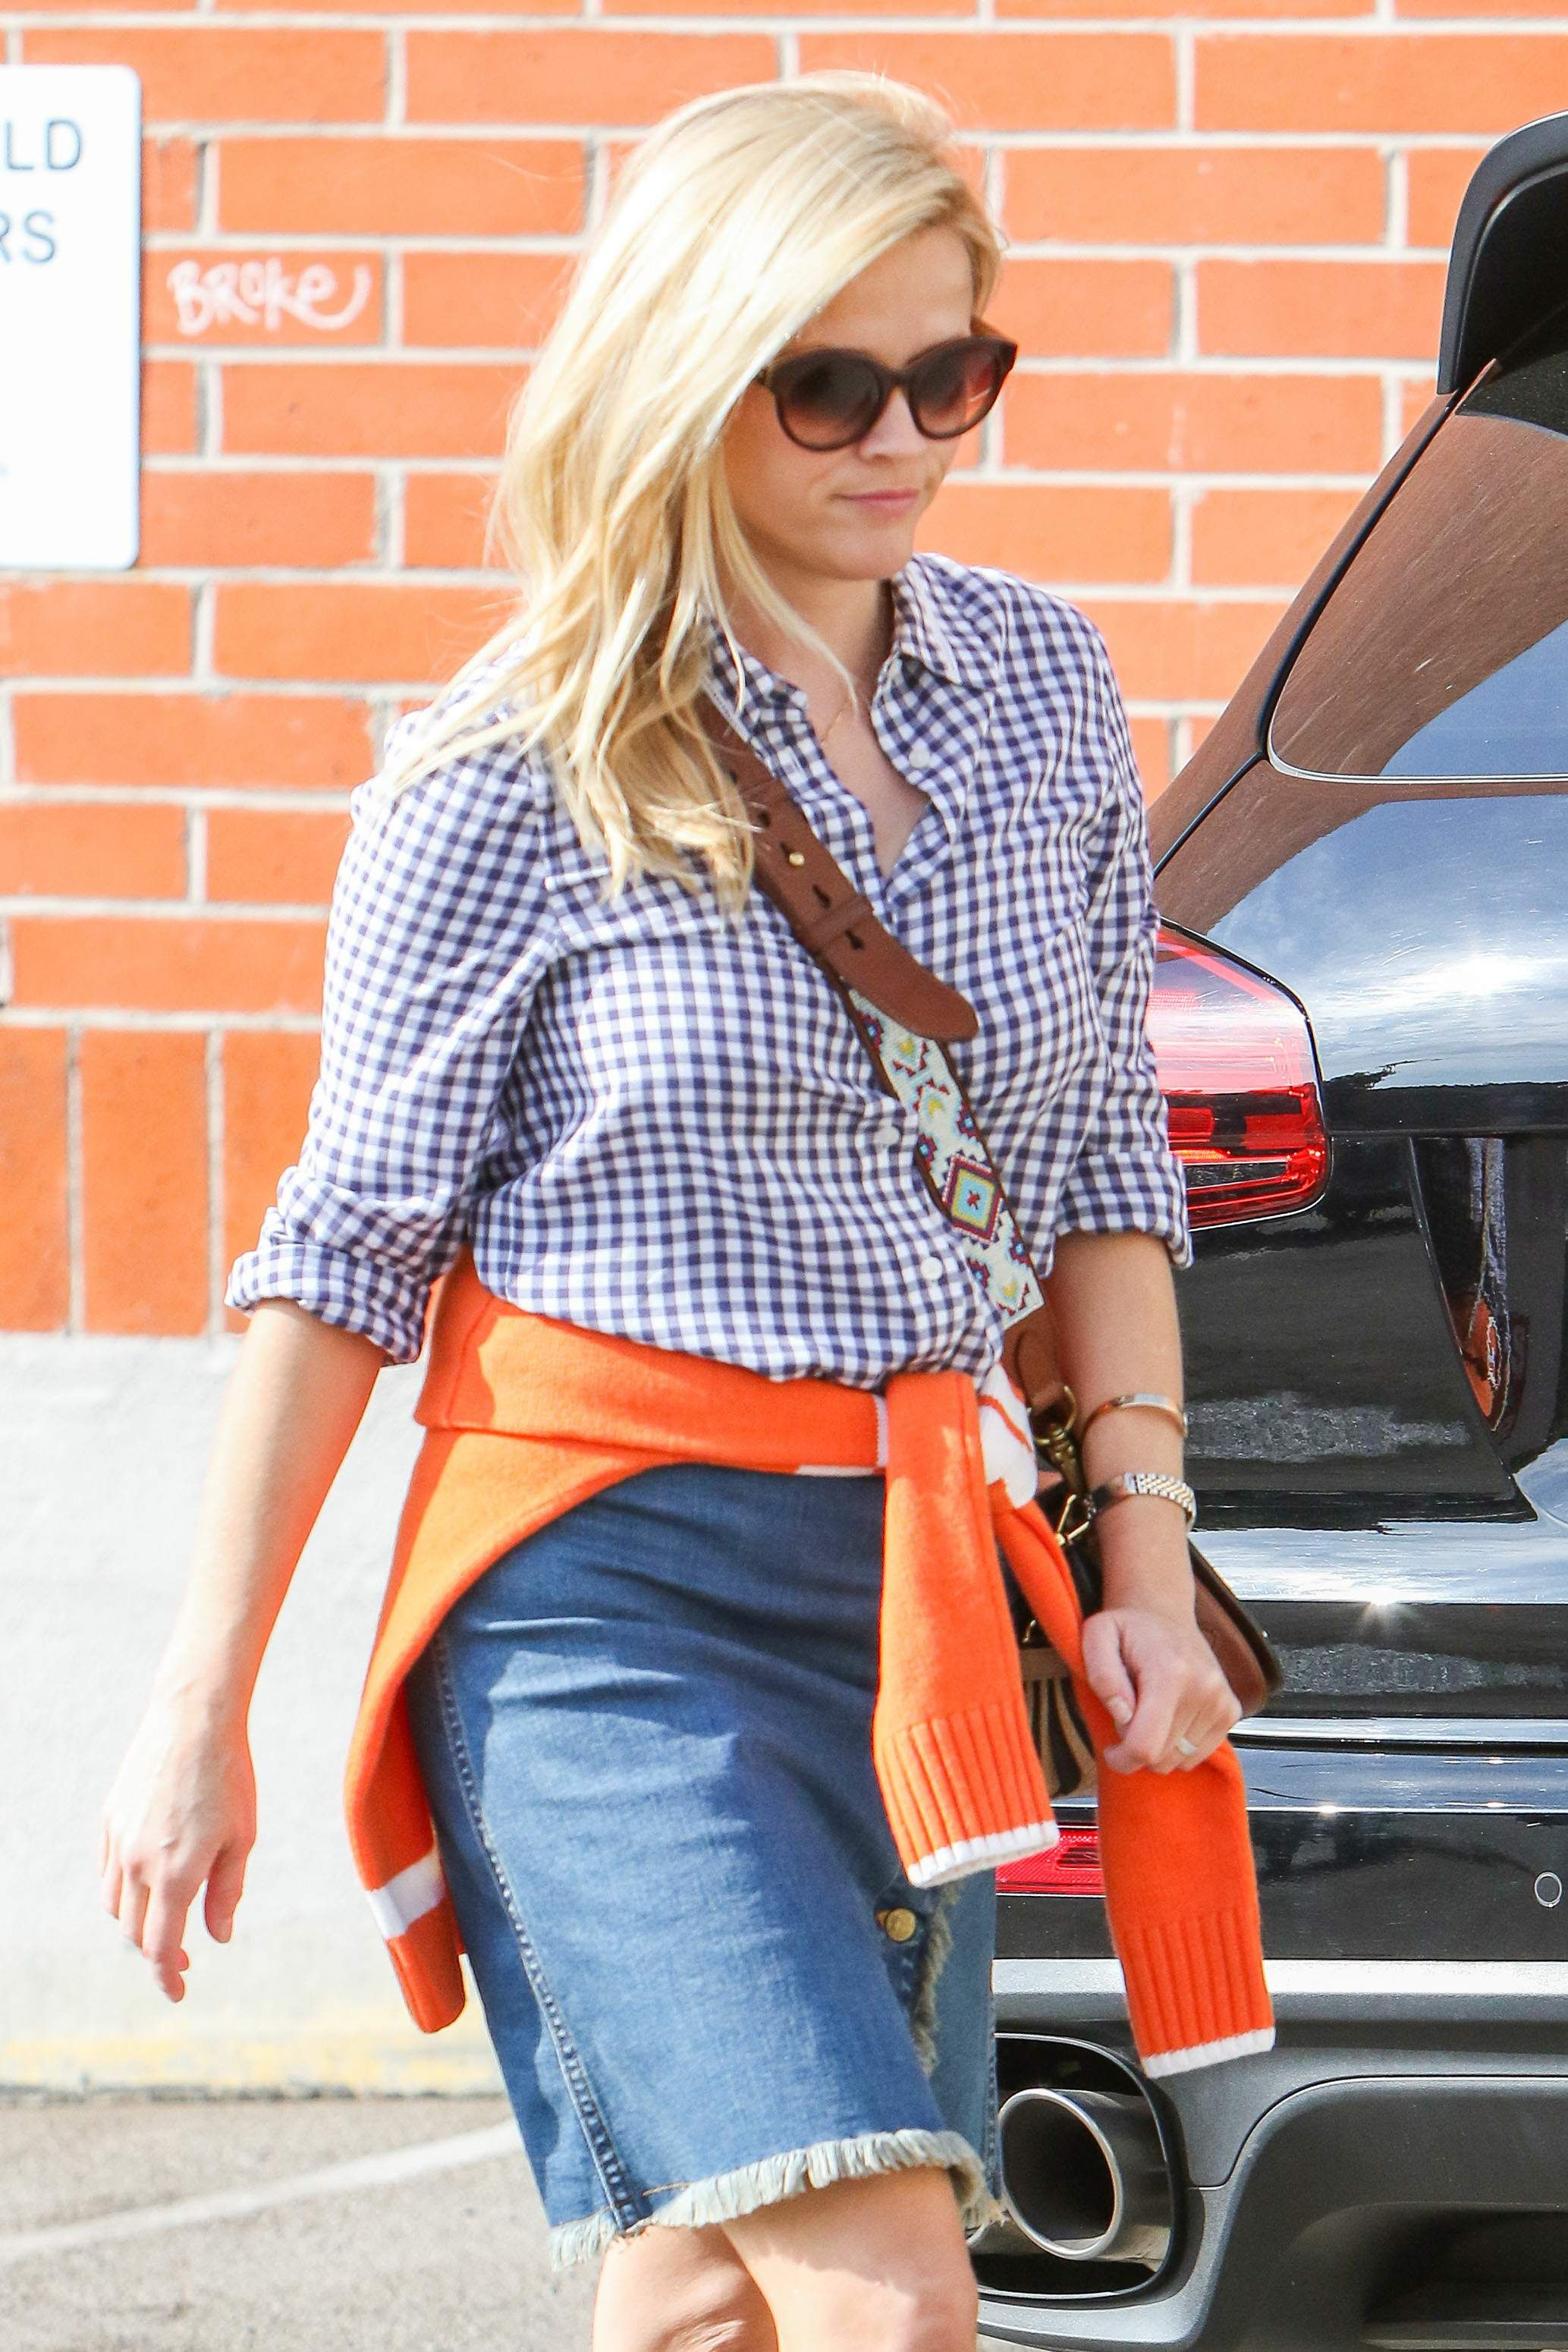 Reese Witherspoon in LA 10/24/16